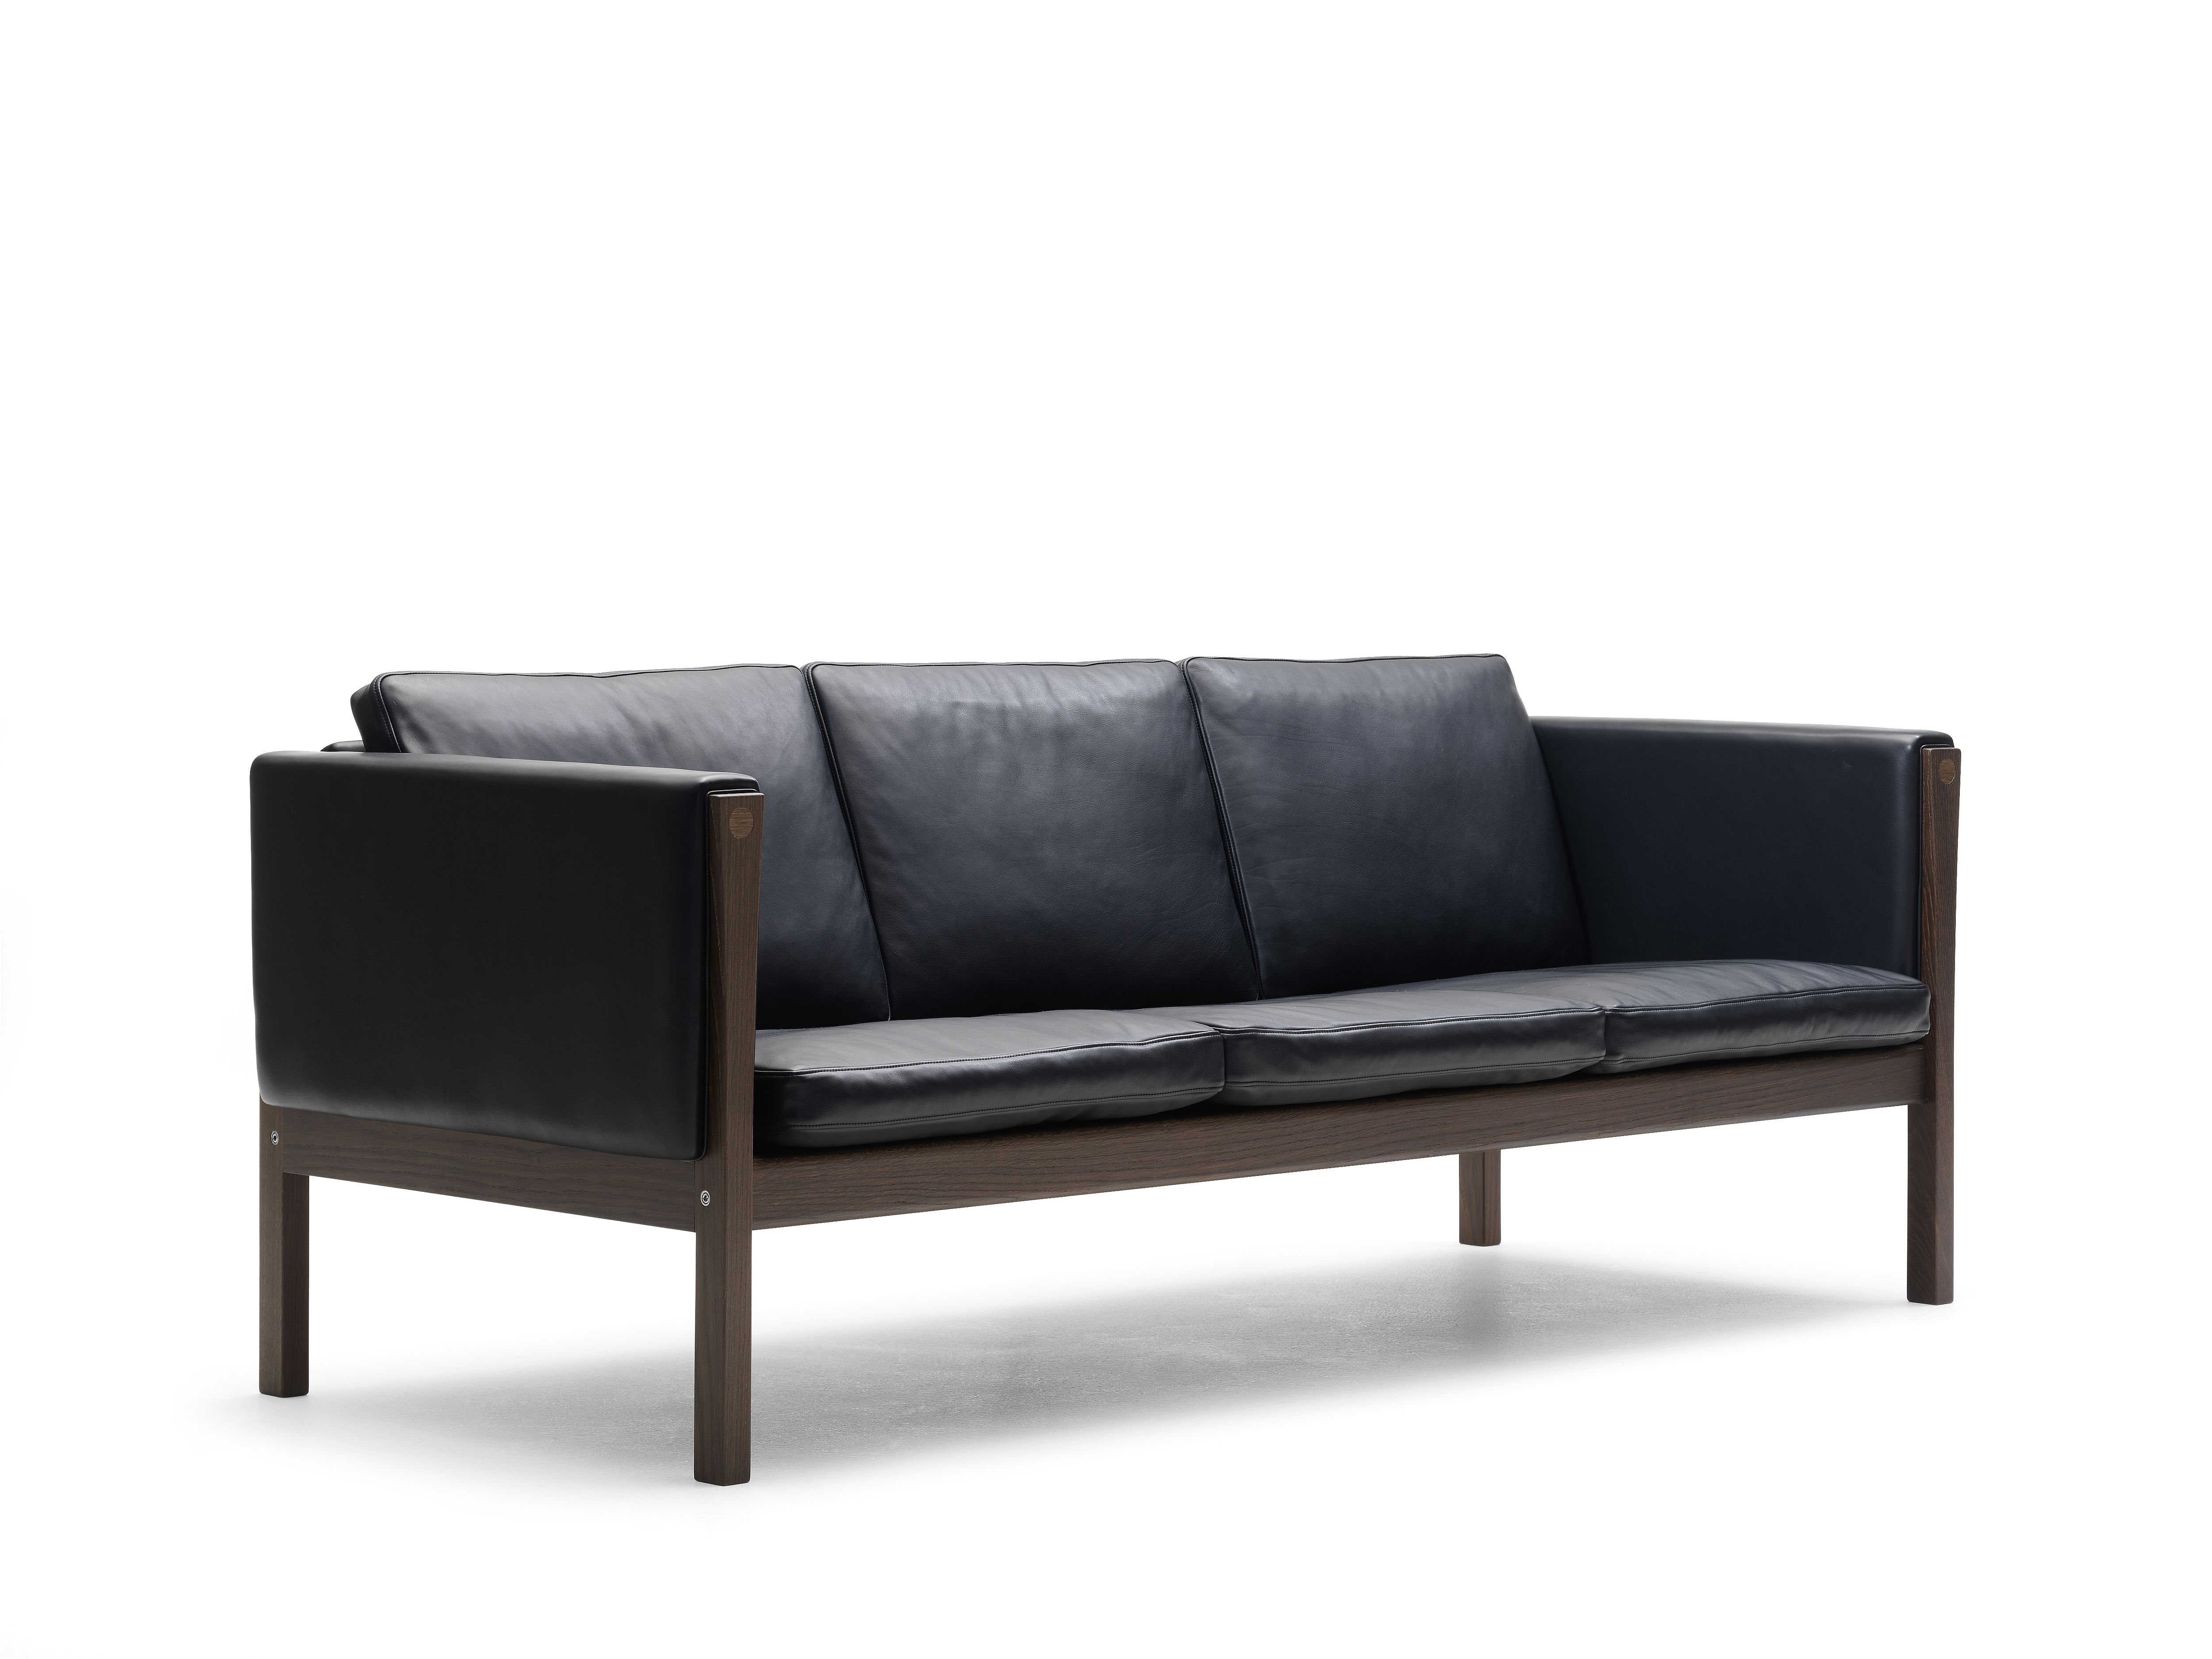 Ch162 Sofa By Hans J Wegner Decor For The More Masculine Version